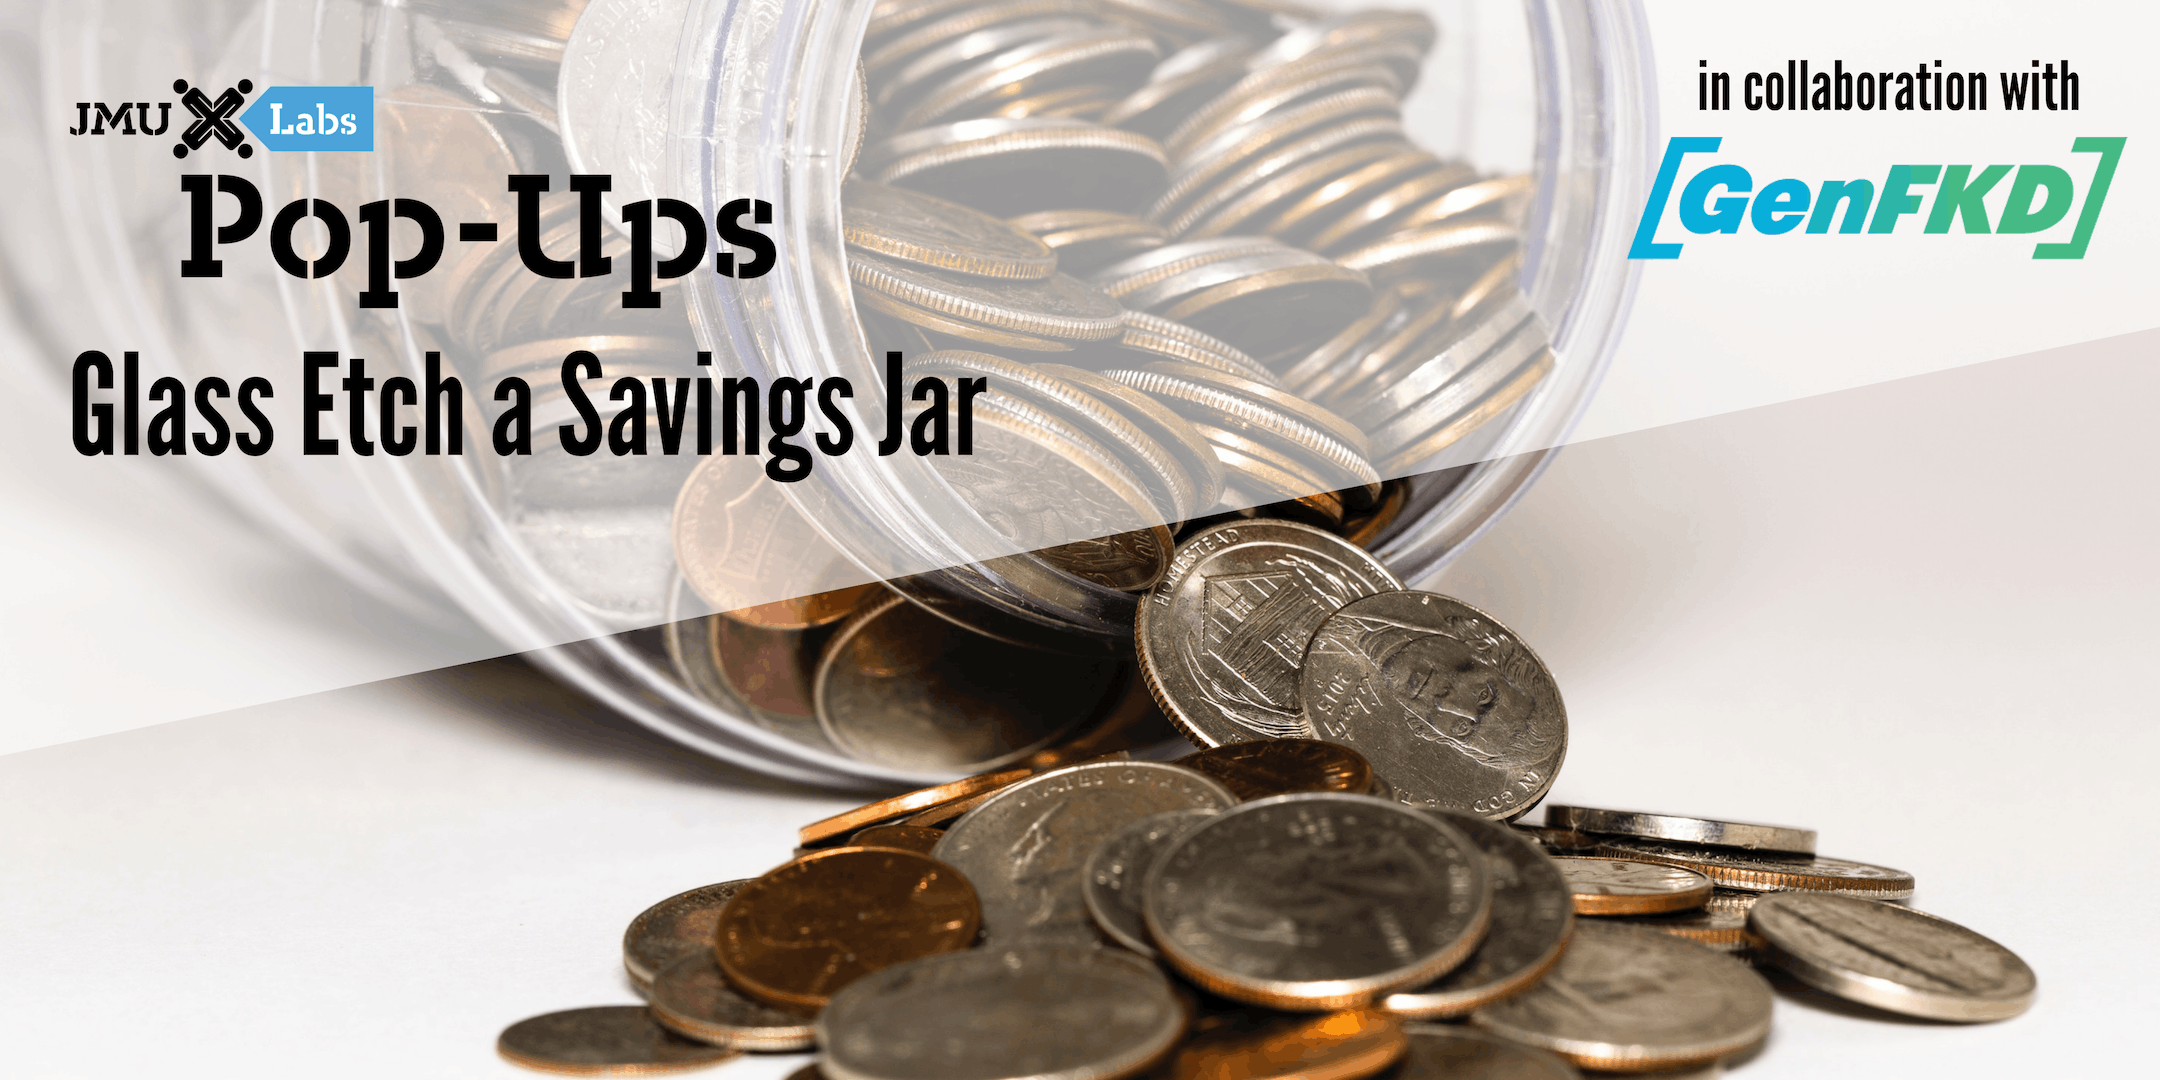 Pop-Up Workshop: Glass Etch a Savings Jar featuring GenFKD